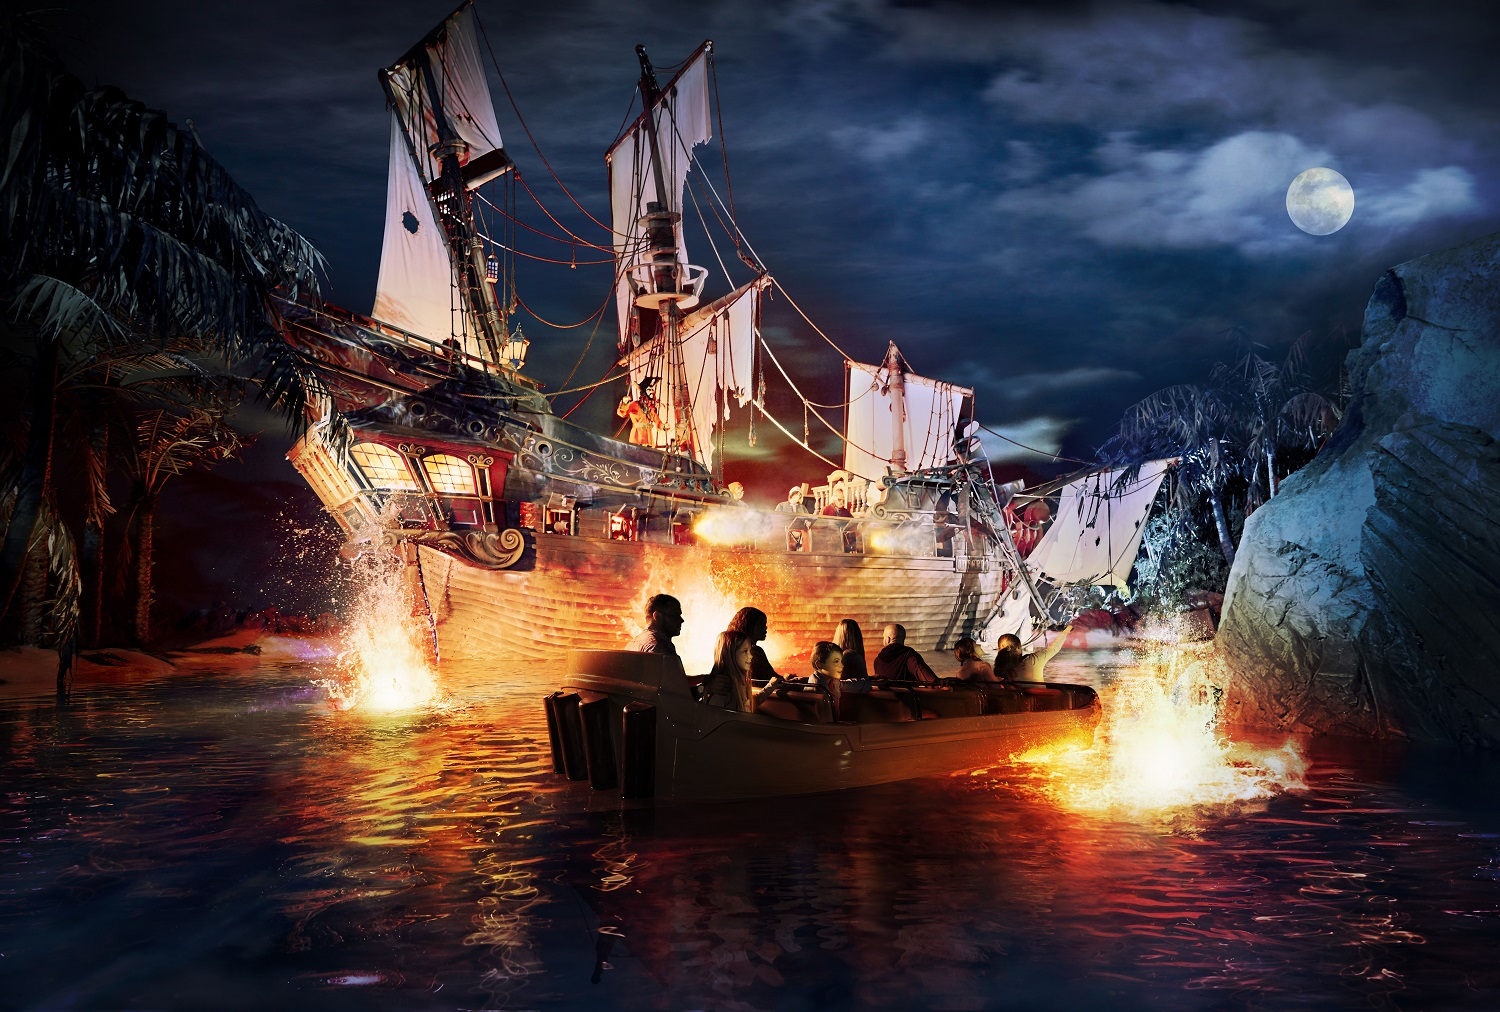 Pirates of the Caribbean ride at Disneyland Paris